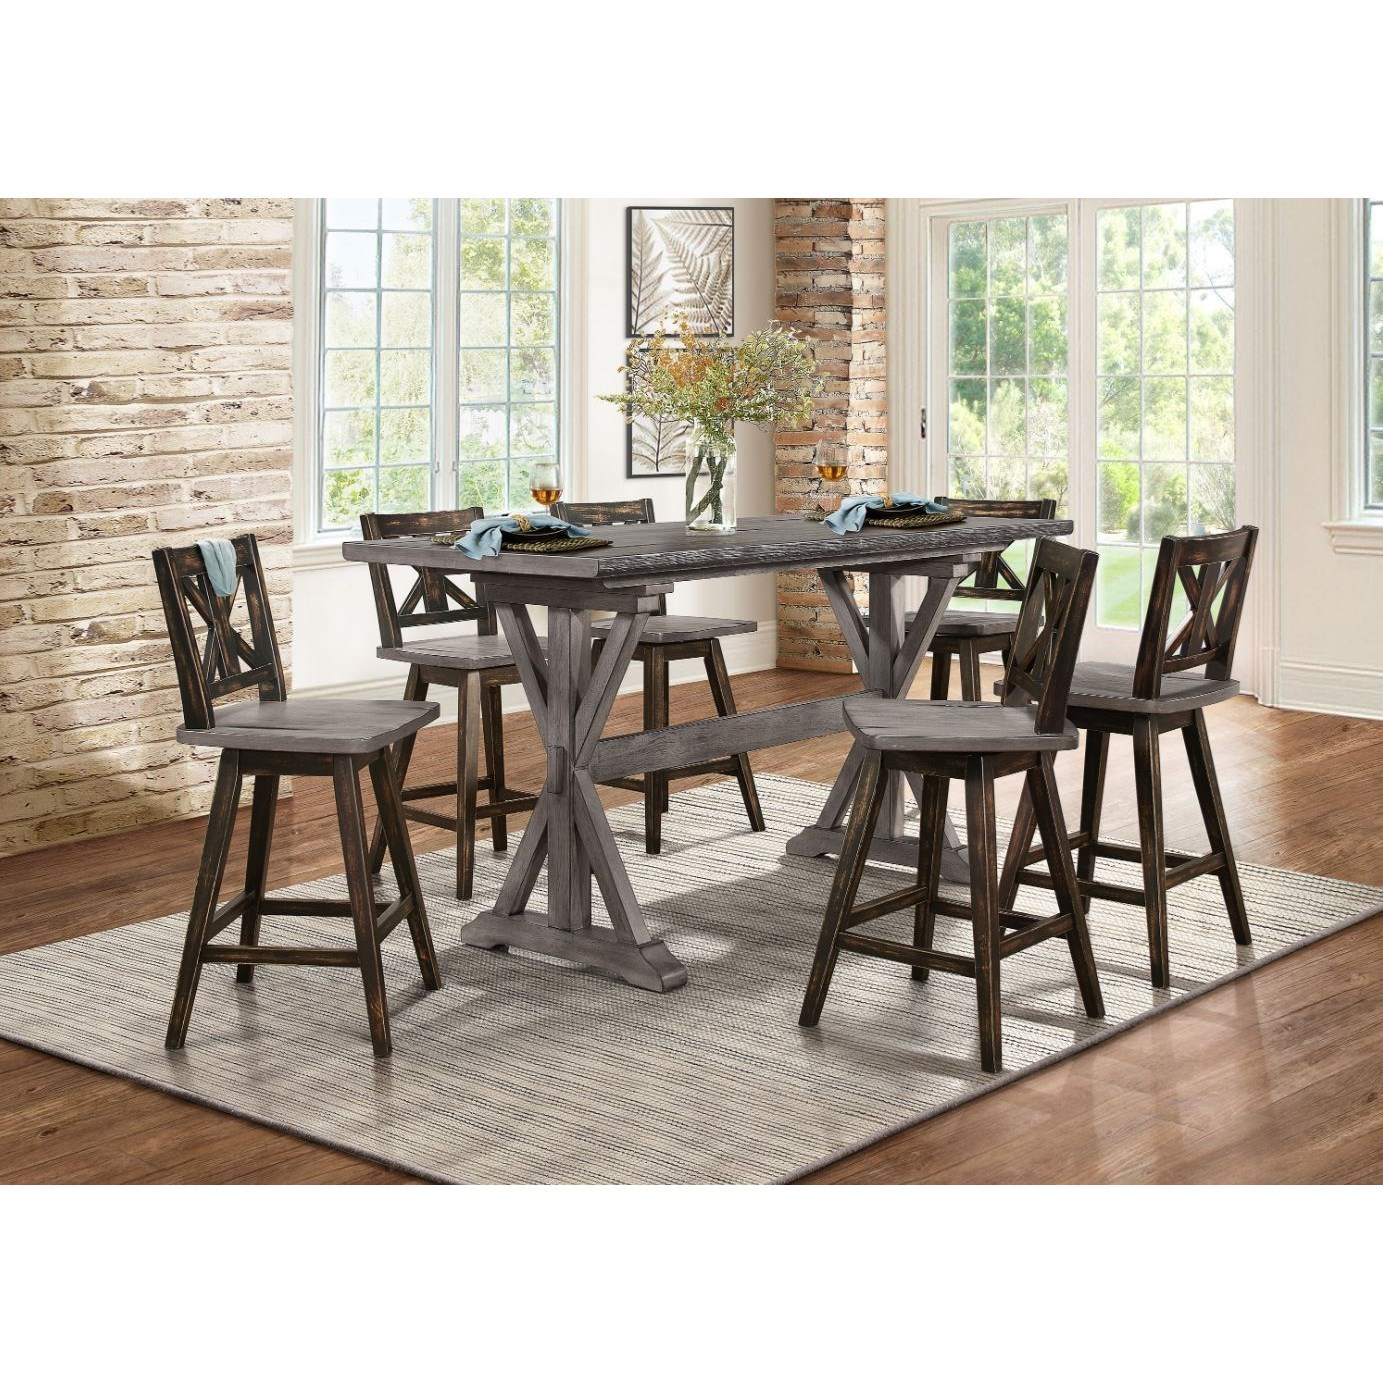 Amsonia 7-Piece Counter Height Dining Set by Homelegance at Value City Furniture